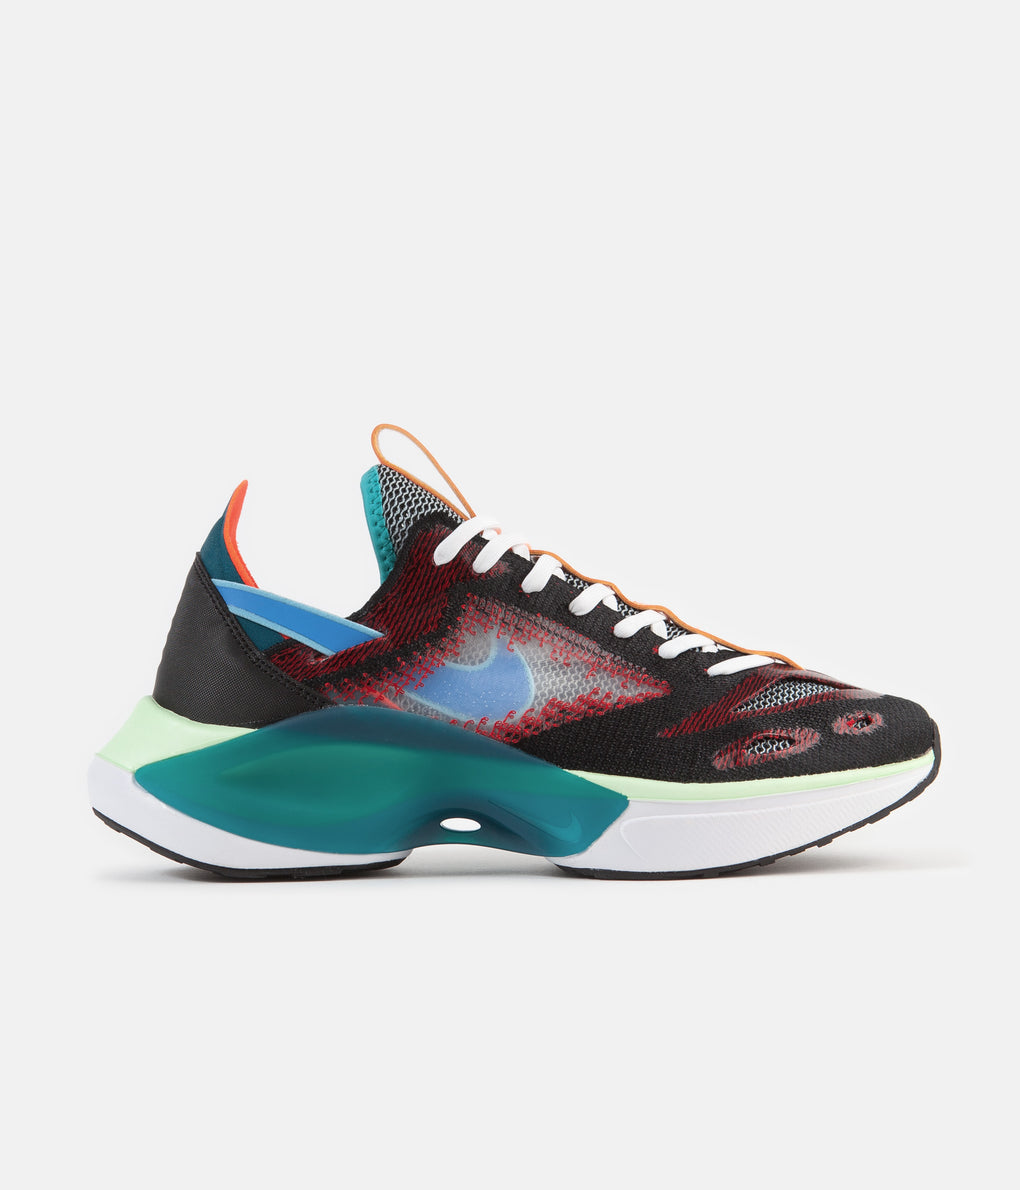 Nike N110 DIMSIX Signal FK Shoes - Black / Blue Hero - Blue Gaze - University Red